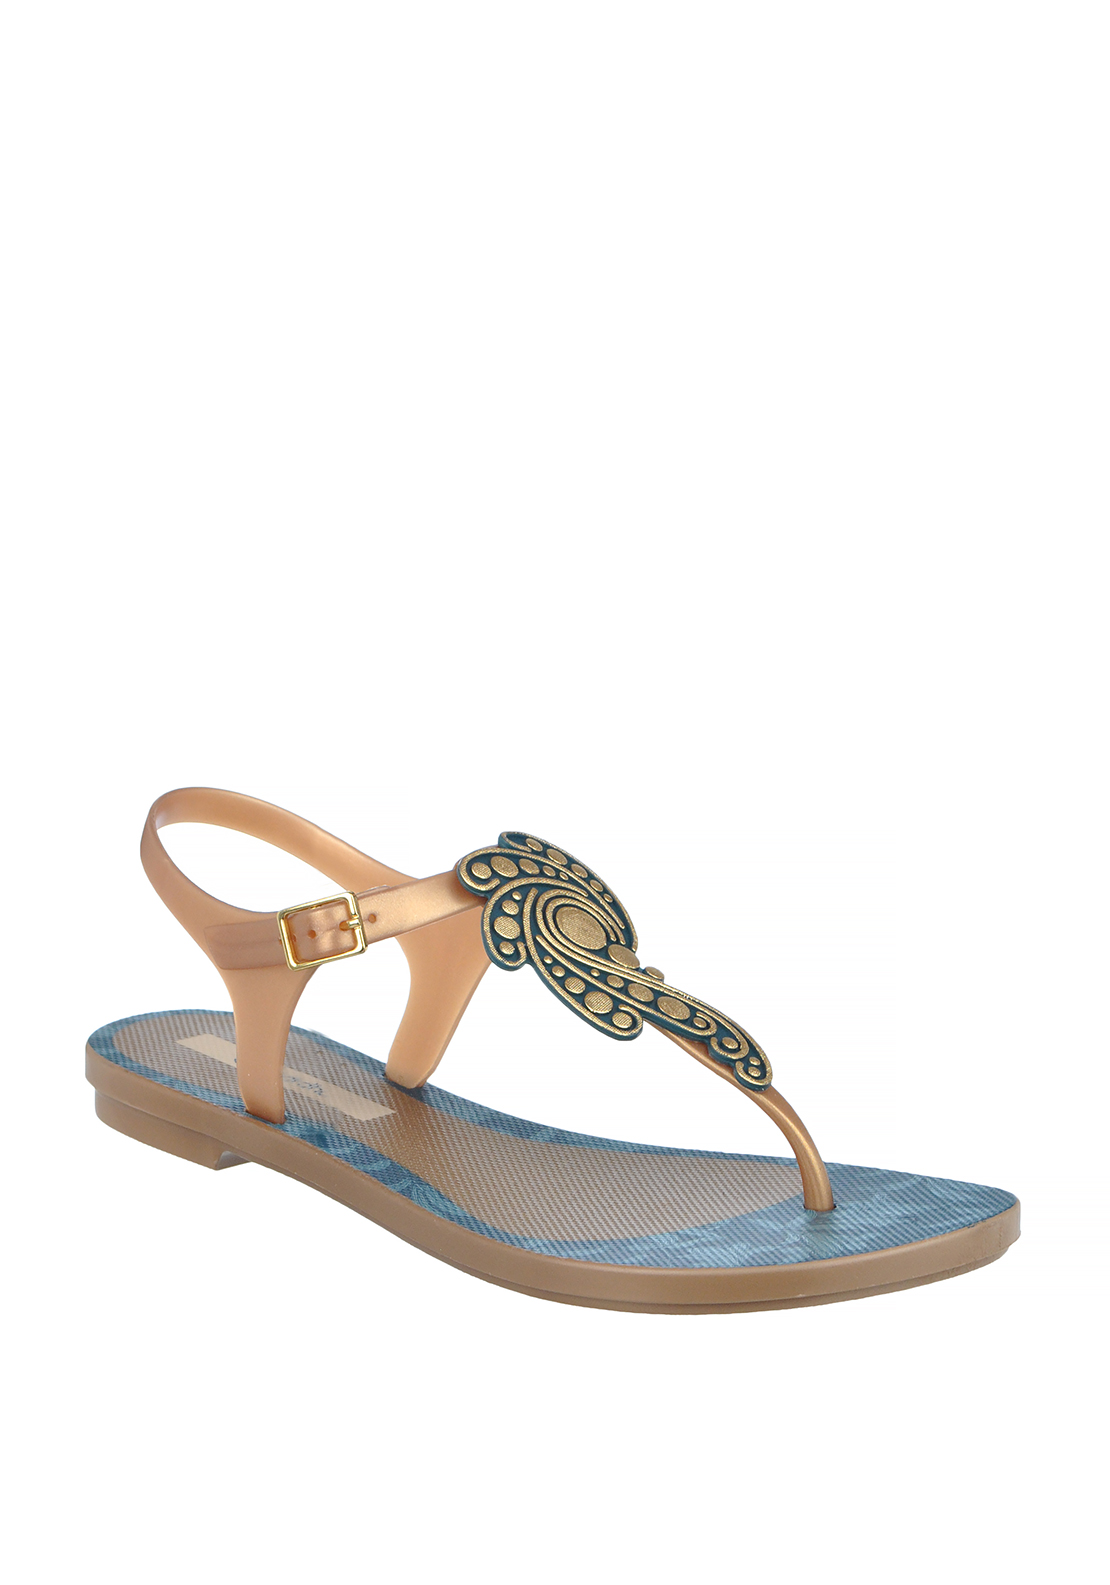 Ipanema Embellished T-Bar Toe Thong Sandals, Gold and Blue